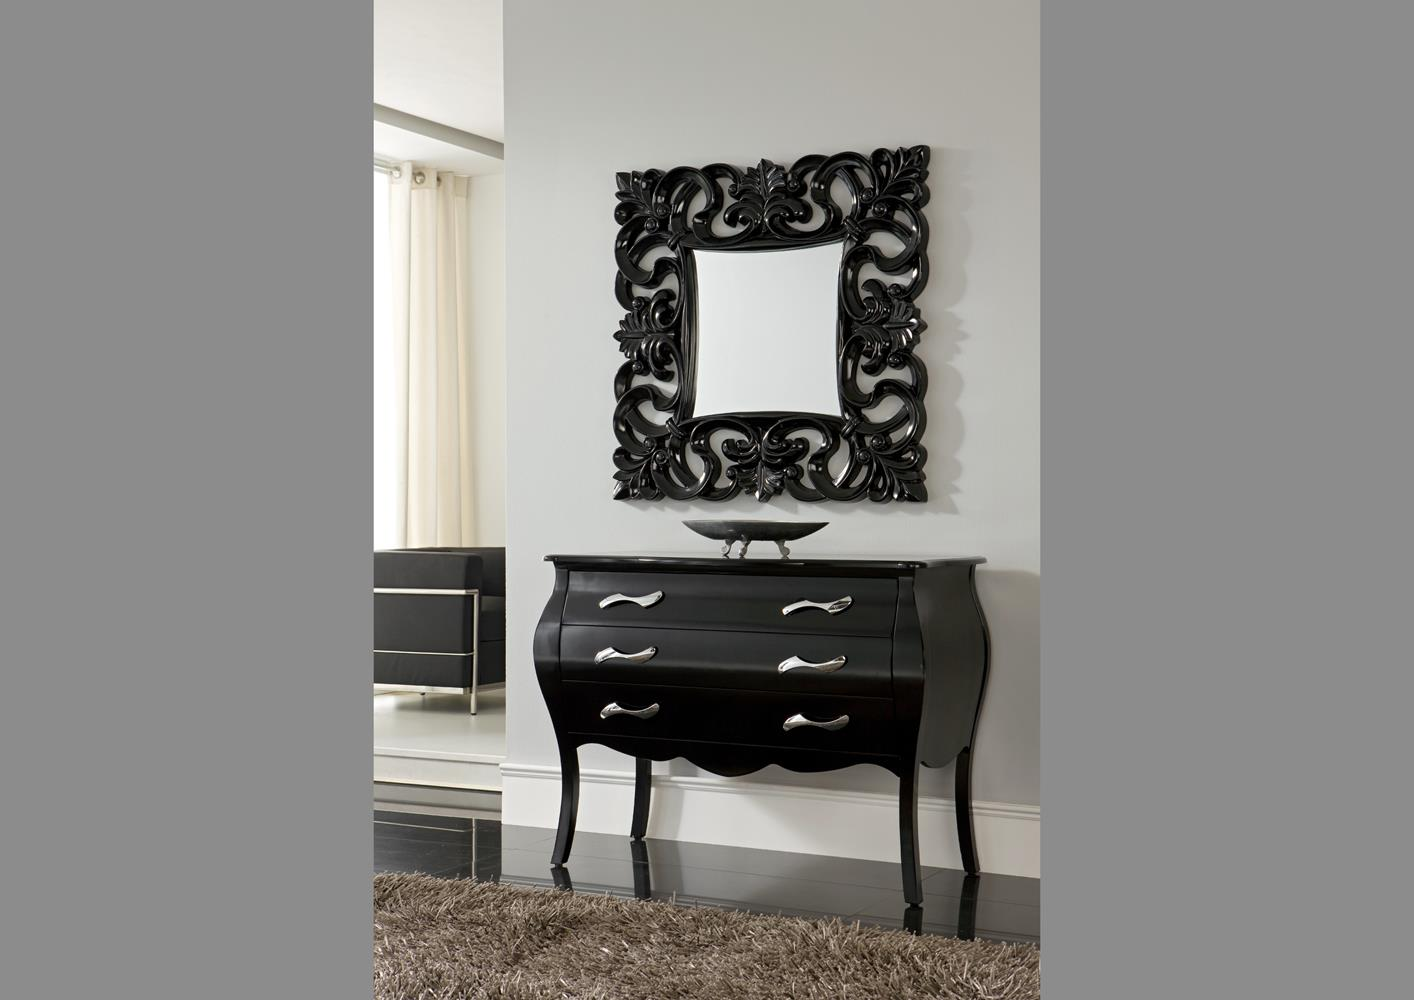 commode noir pas cher free meuble baroque noir commode baroque avec vasque nos meubles esprit. Black Bedroom Furniture Sets. Home Design Ideas